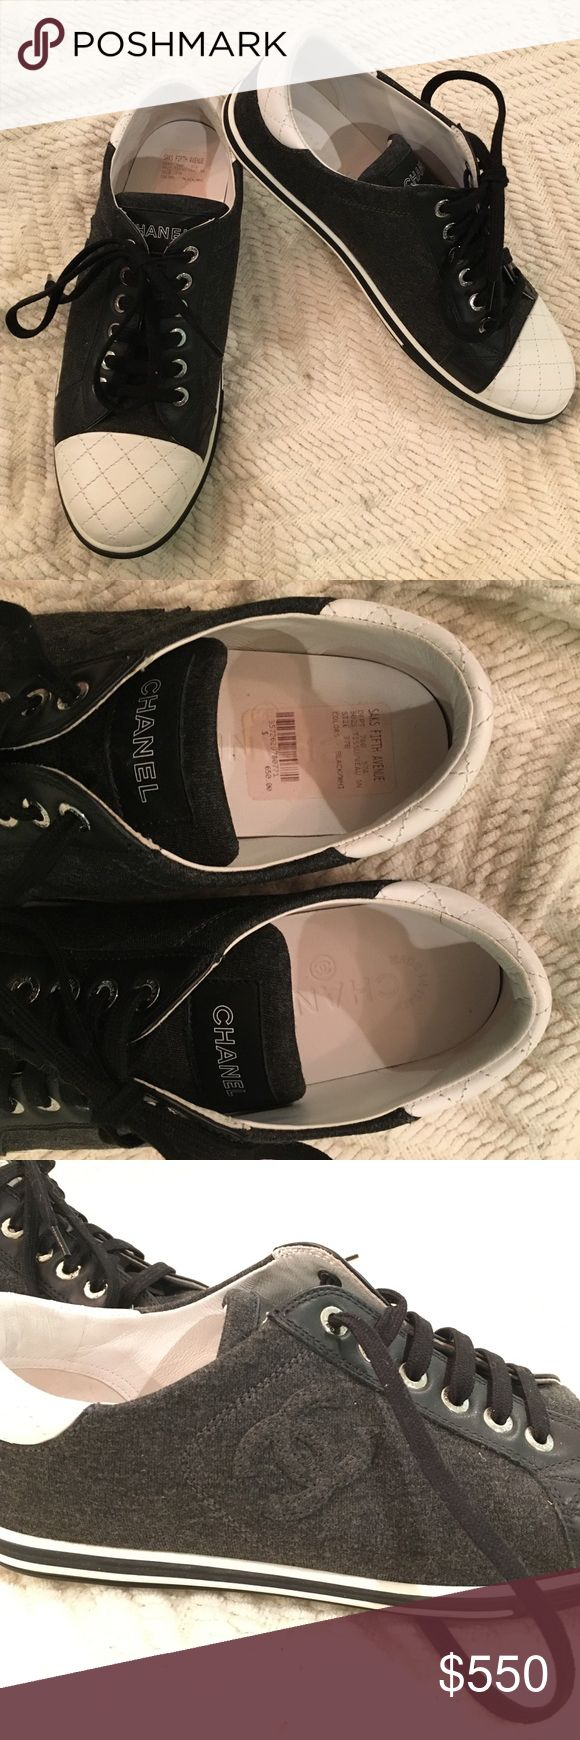 CHANEL black and white sneakers CHANEL sneakers with the signature logo on the outside of each shoe that is covered with fabric. White heel and toe accent. Leather trim. Size 37. Worn only once and in brand new condition. No box. Price sticker still inside of right shoe. Open to offers! CHANEL Shoes Sneakers